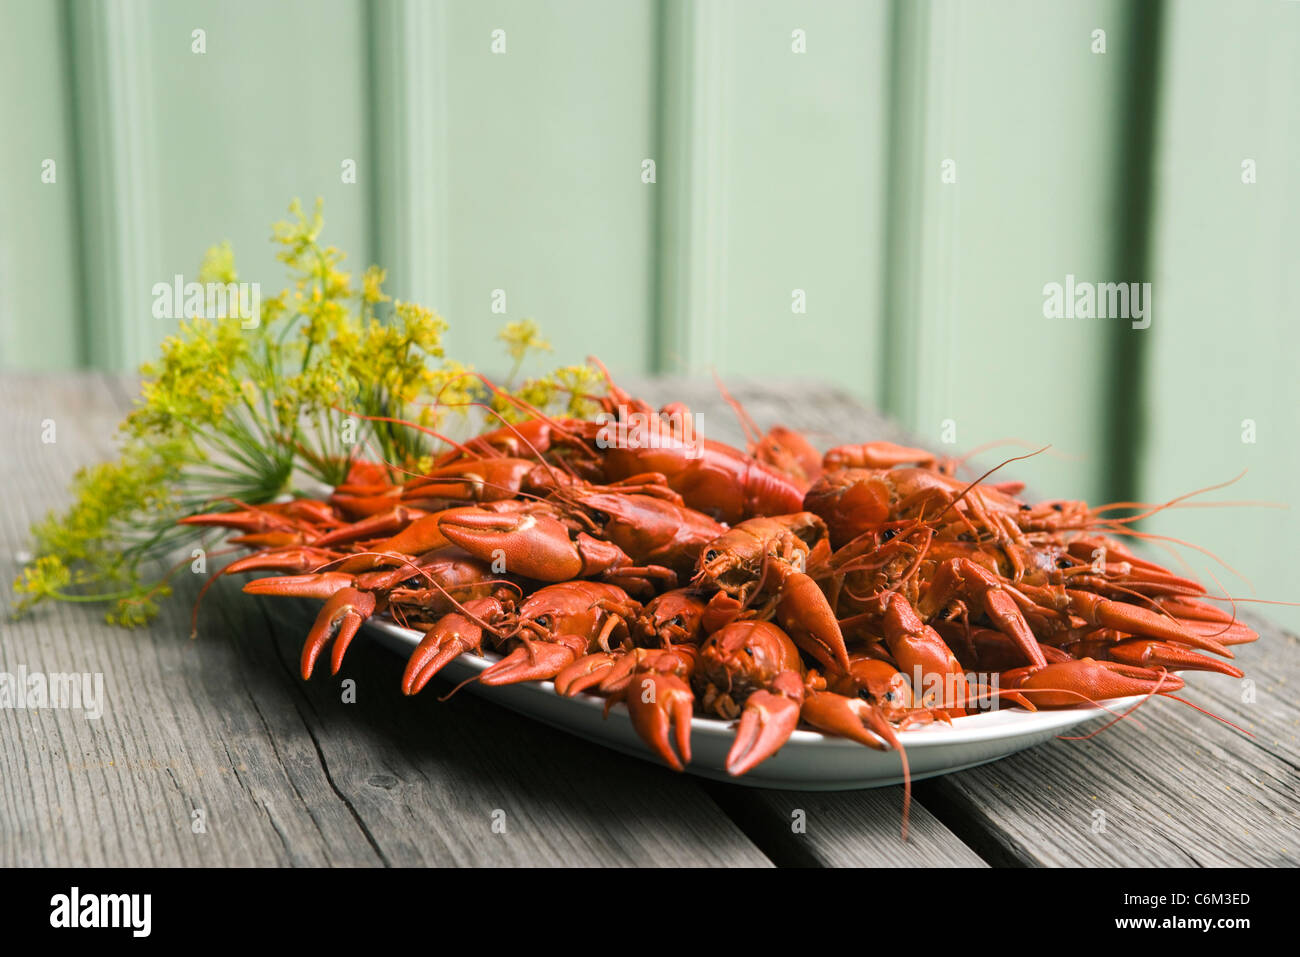 Boiled crawfish garnished with fresh dill - Stock Image